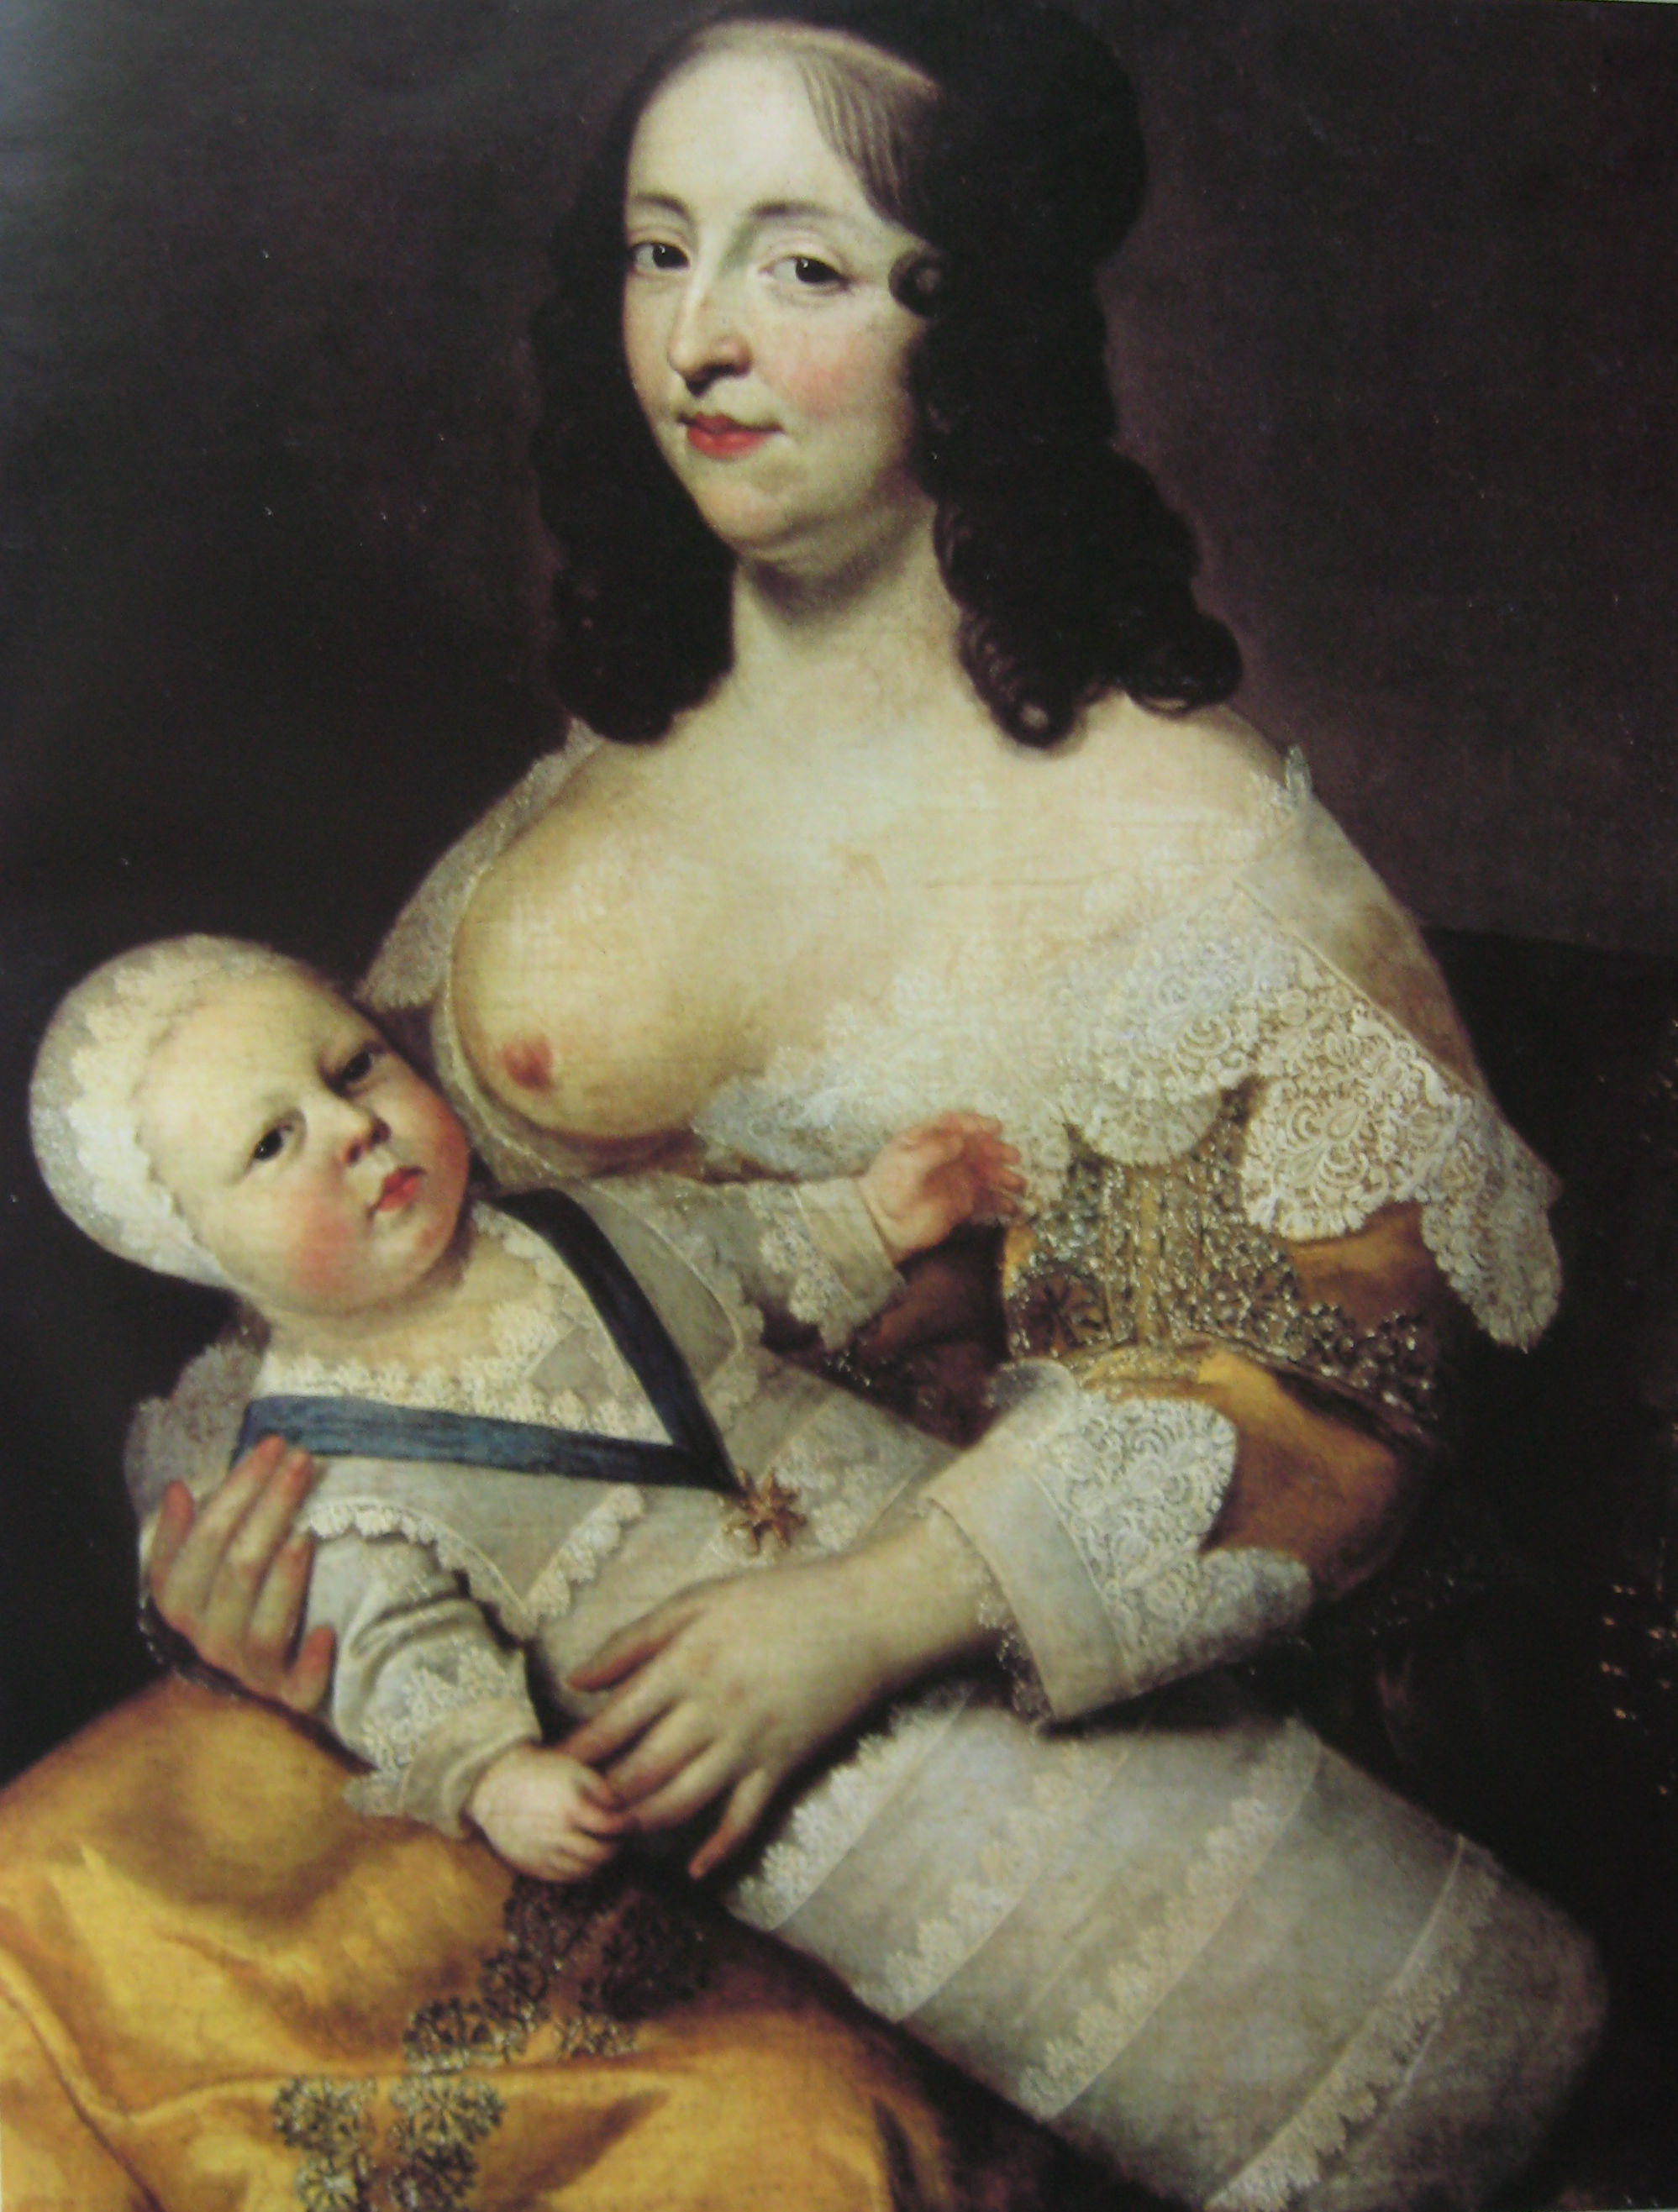 Louis XIV As An Infant With His Nurse Longuet De La Giraudiere